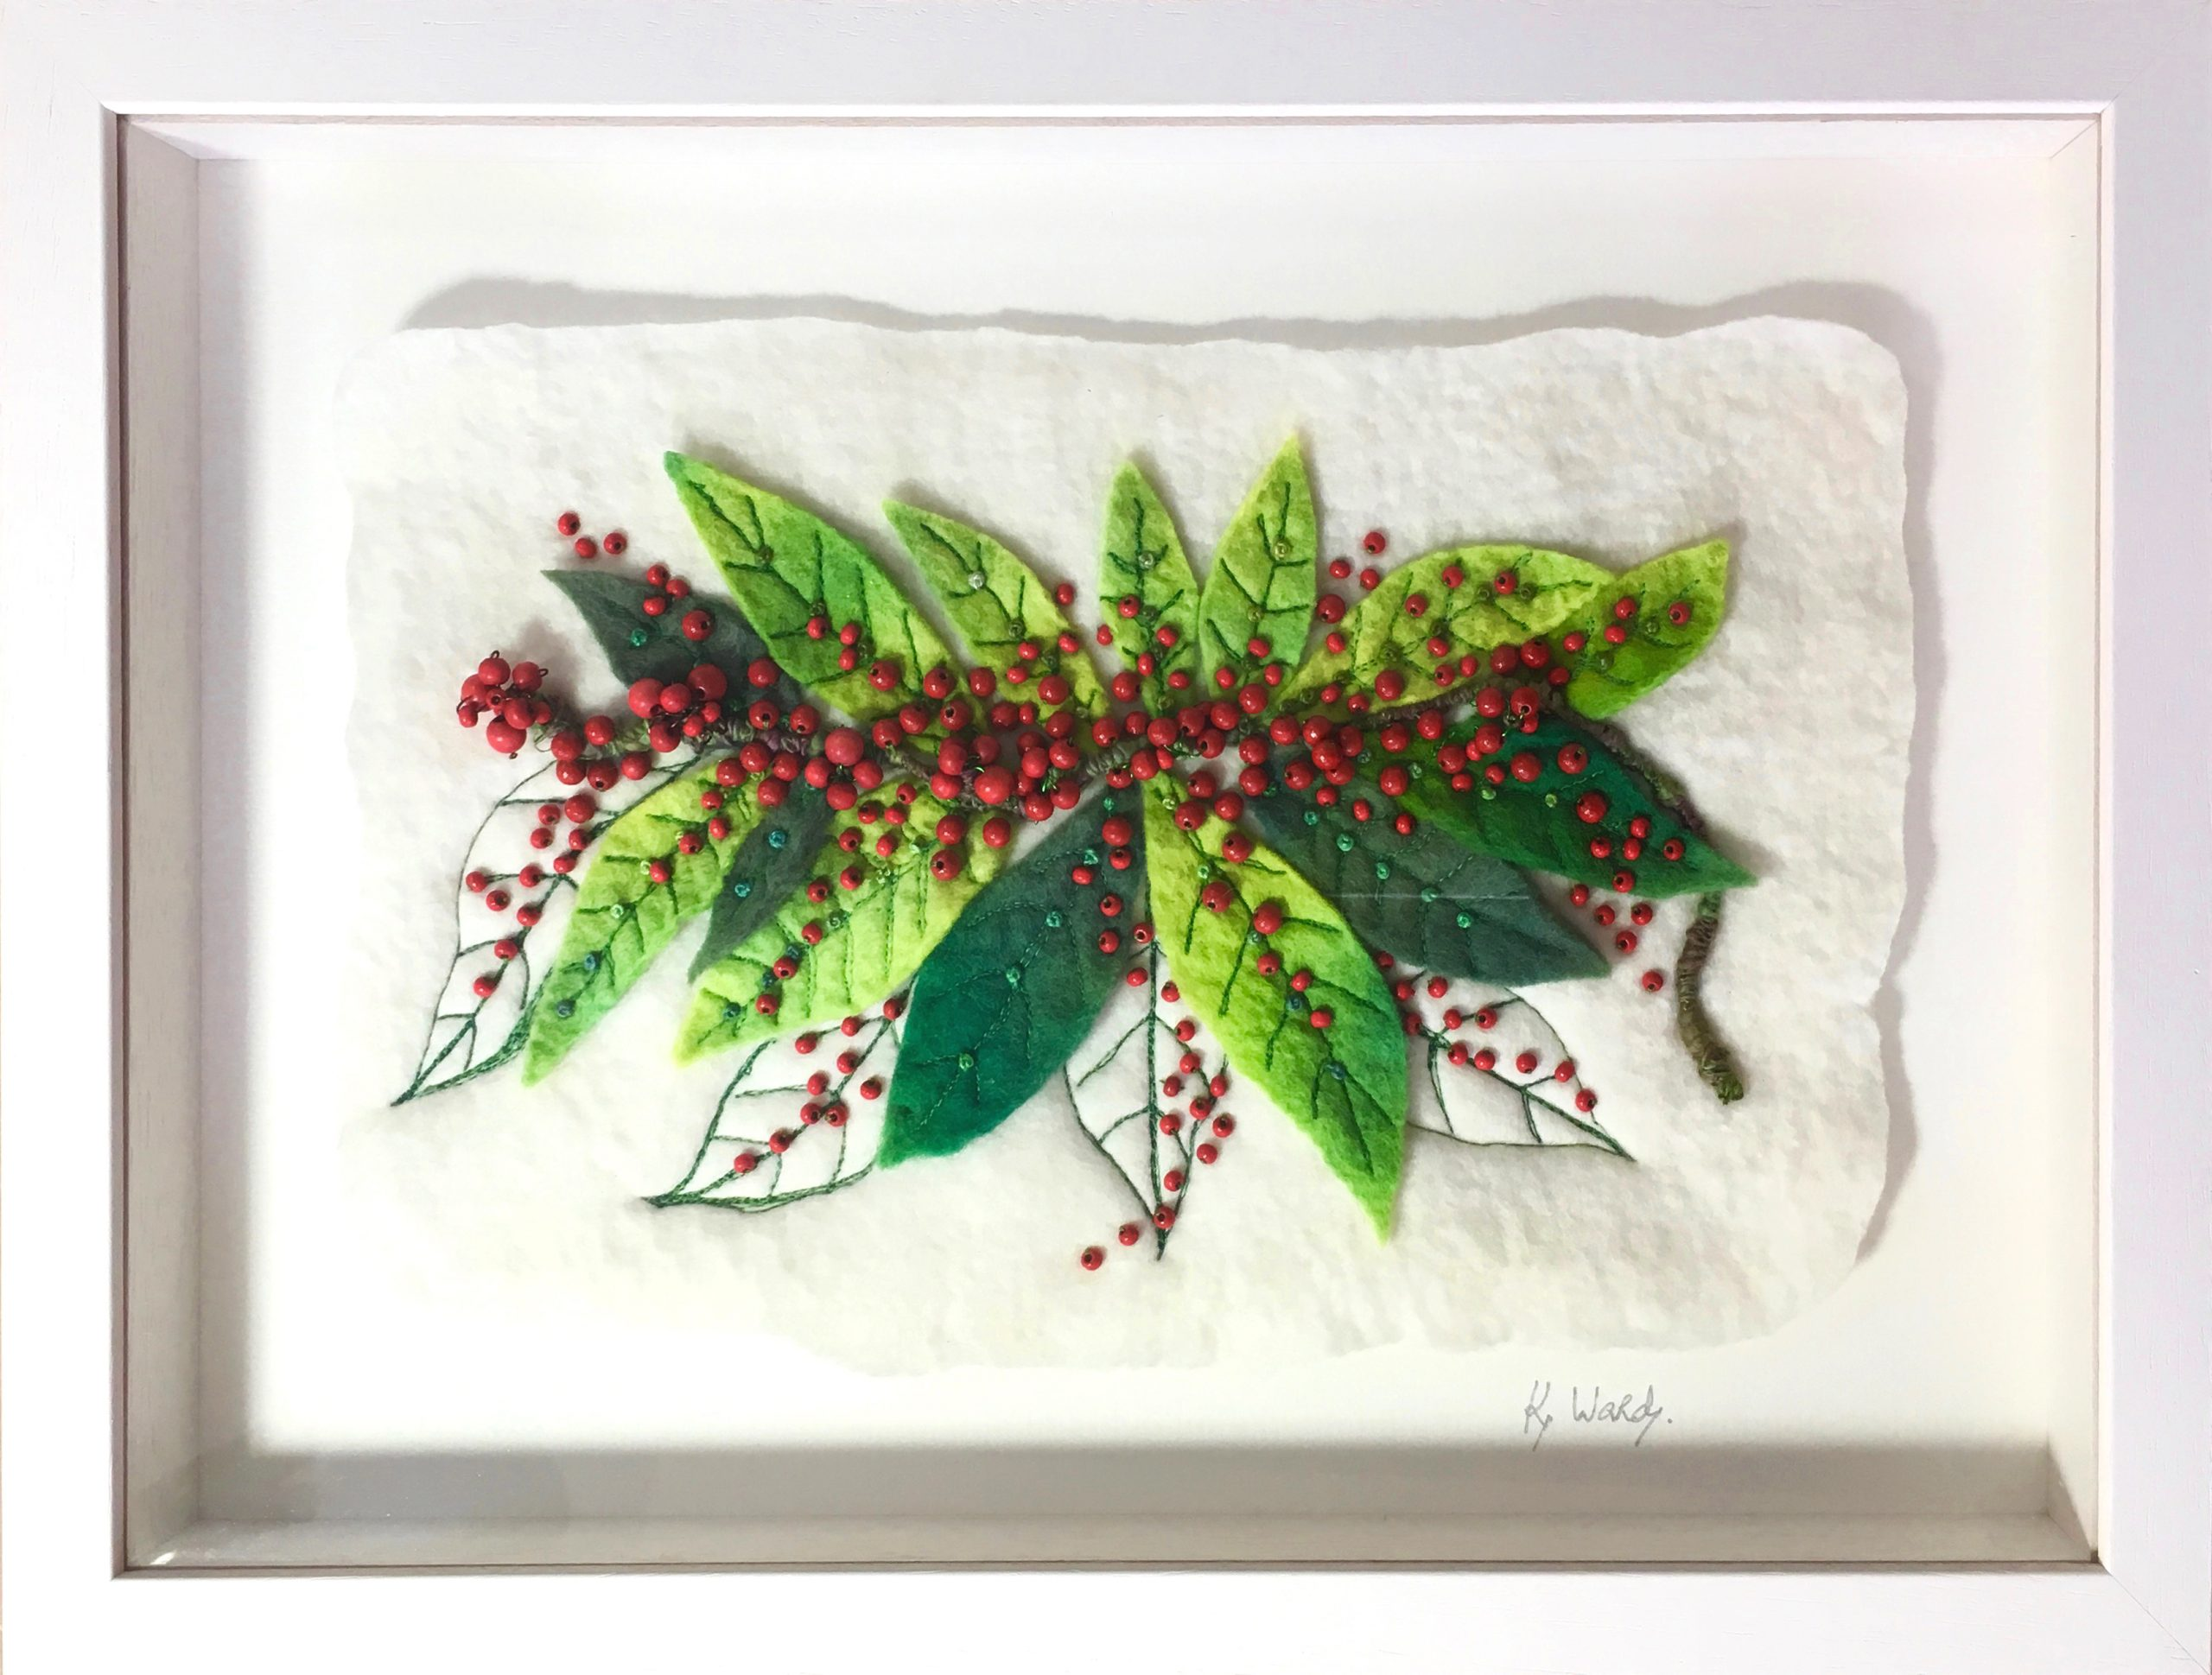 Hand Painted and Hand Felted Picture of Leaves and Berries from the Garden